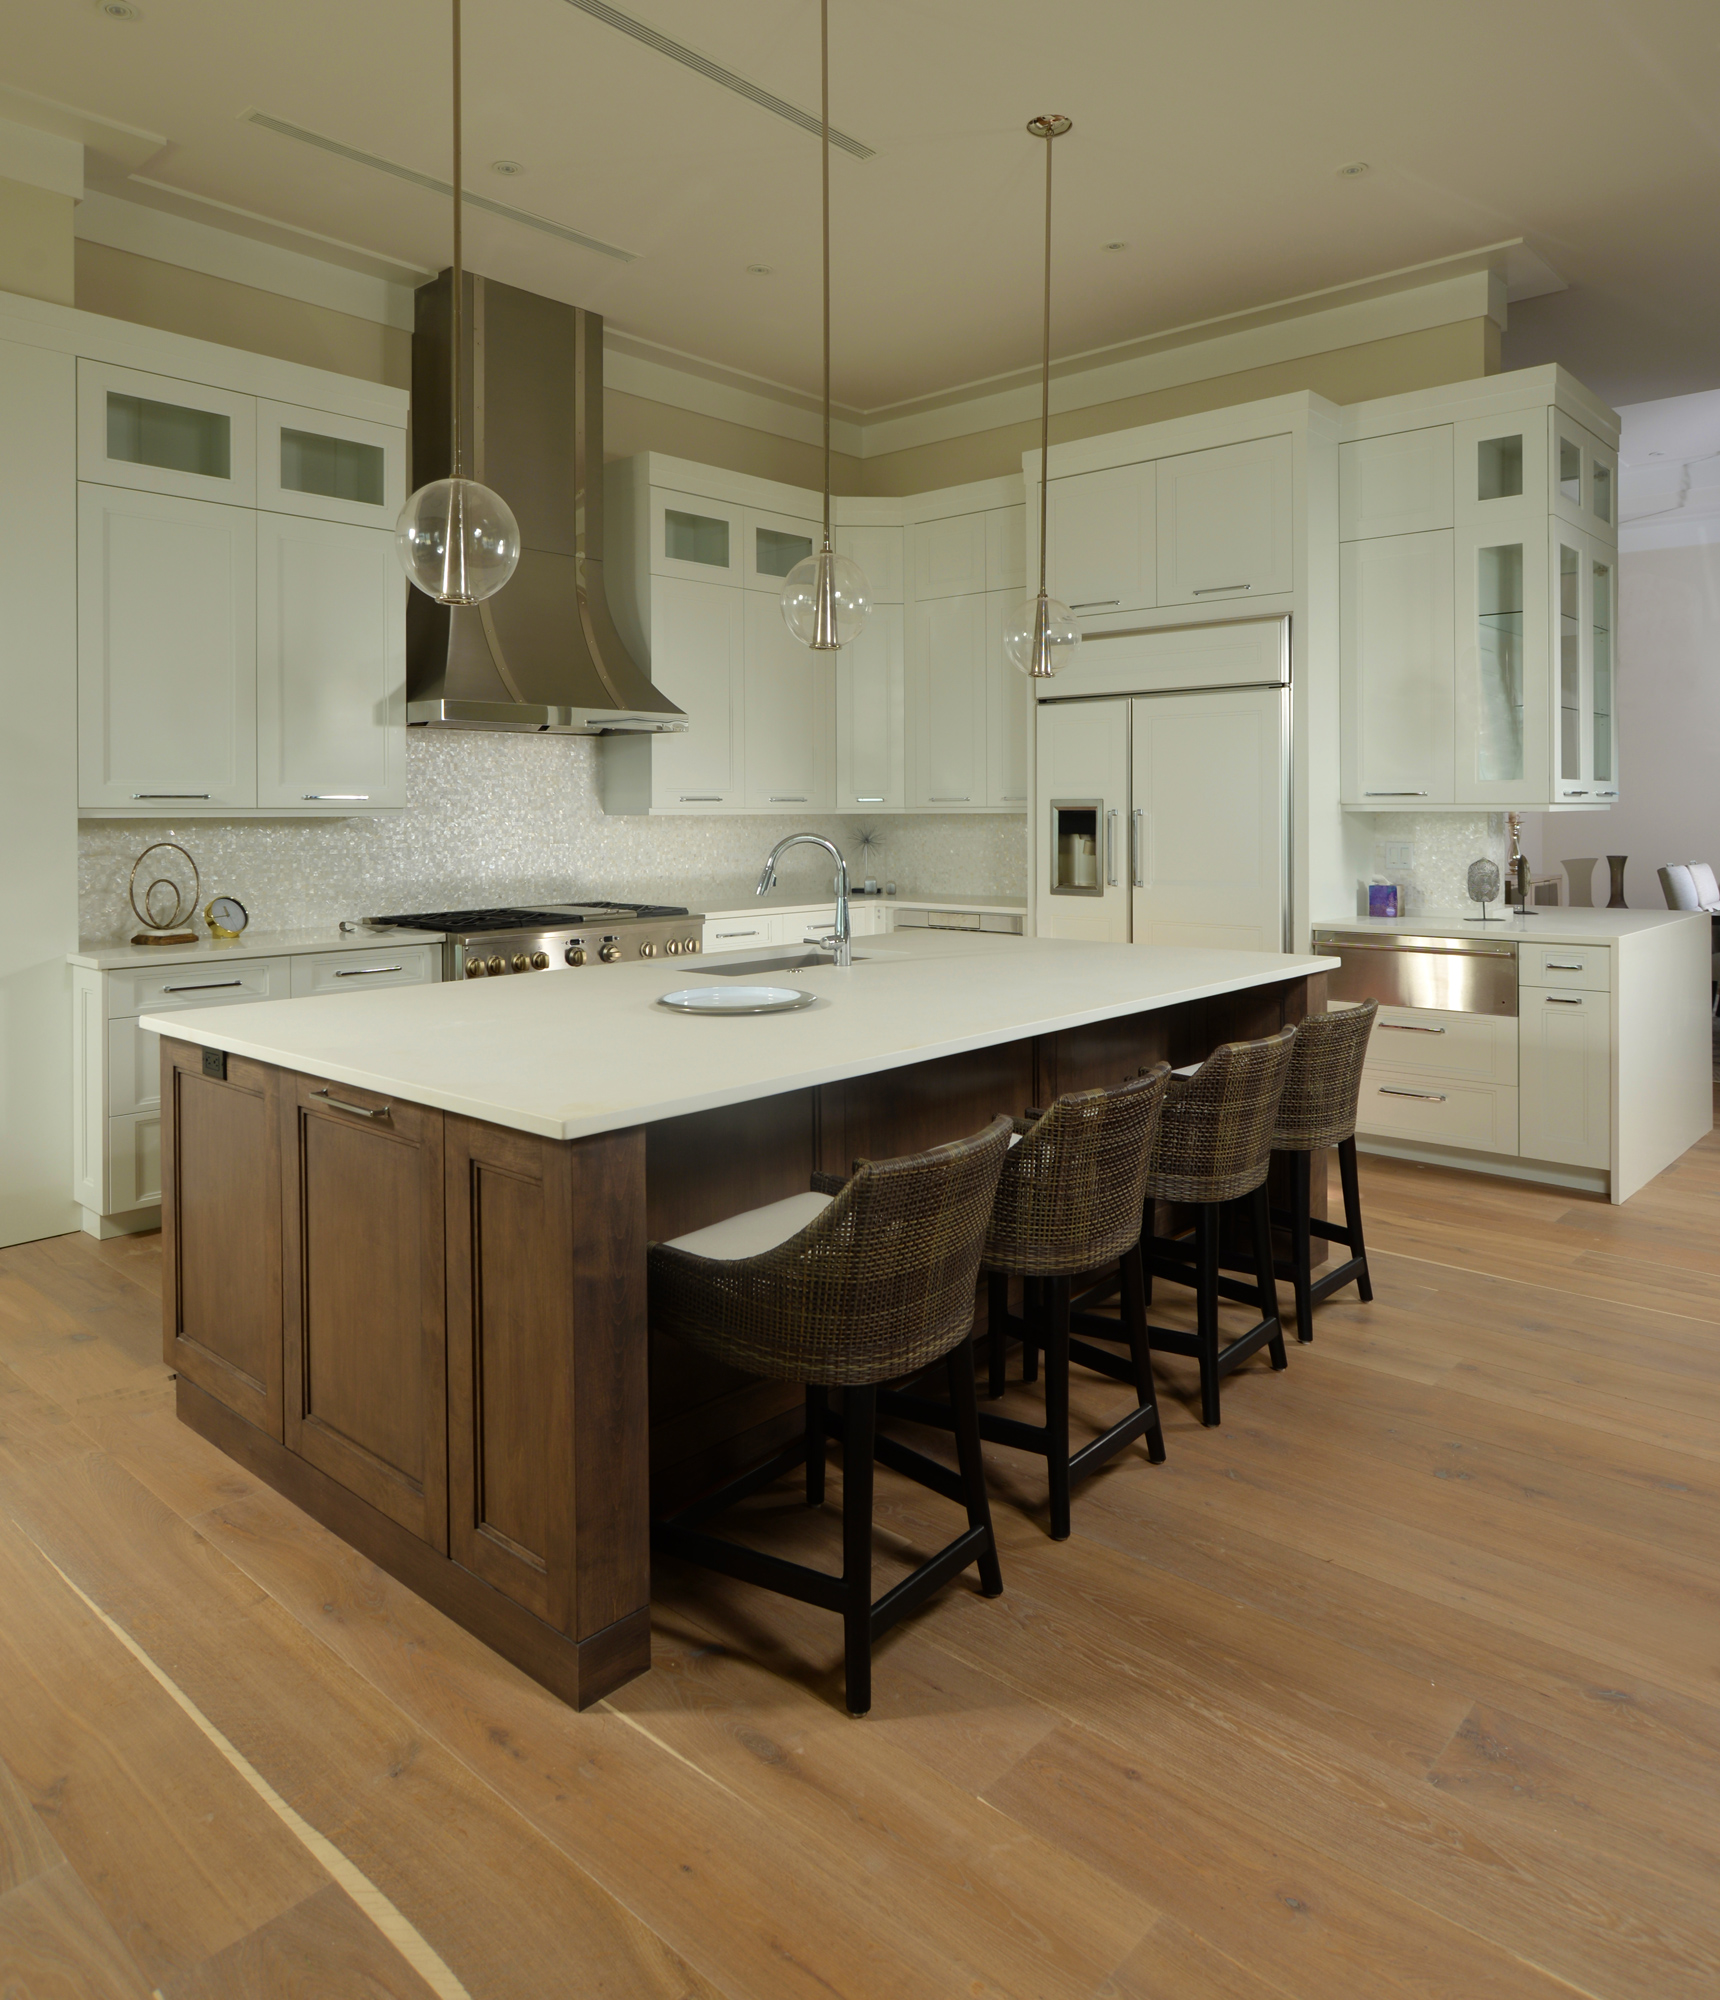 Ordinaire Schedule A Kitchen Consultation Today